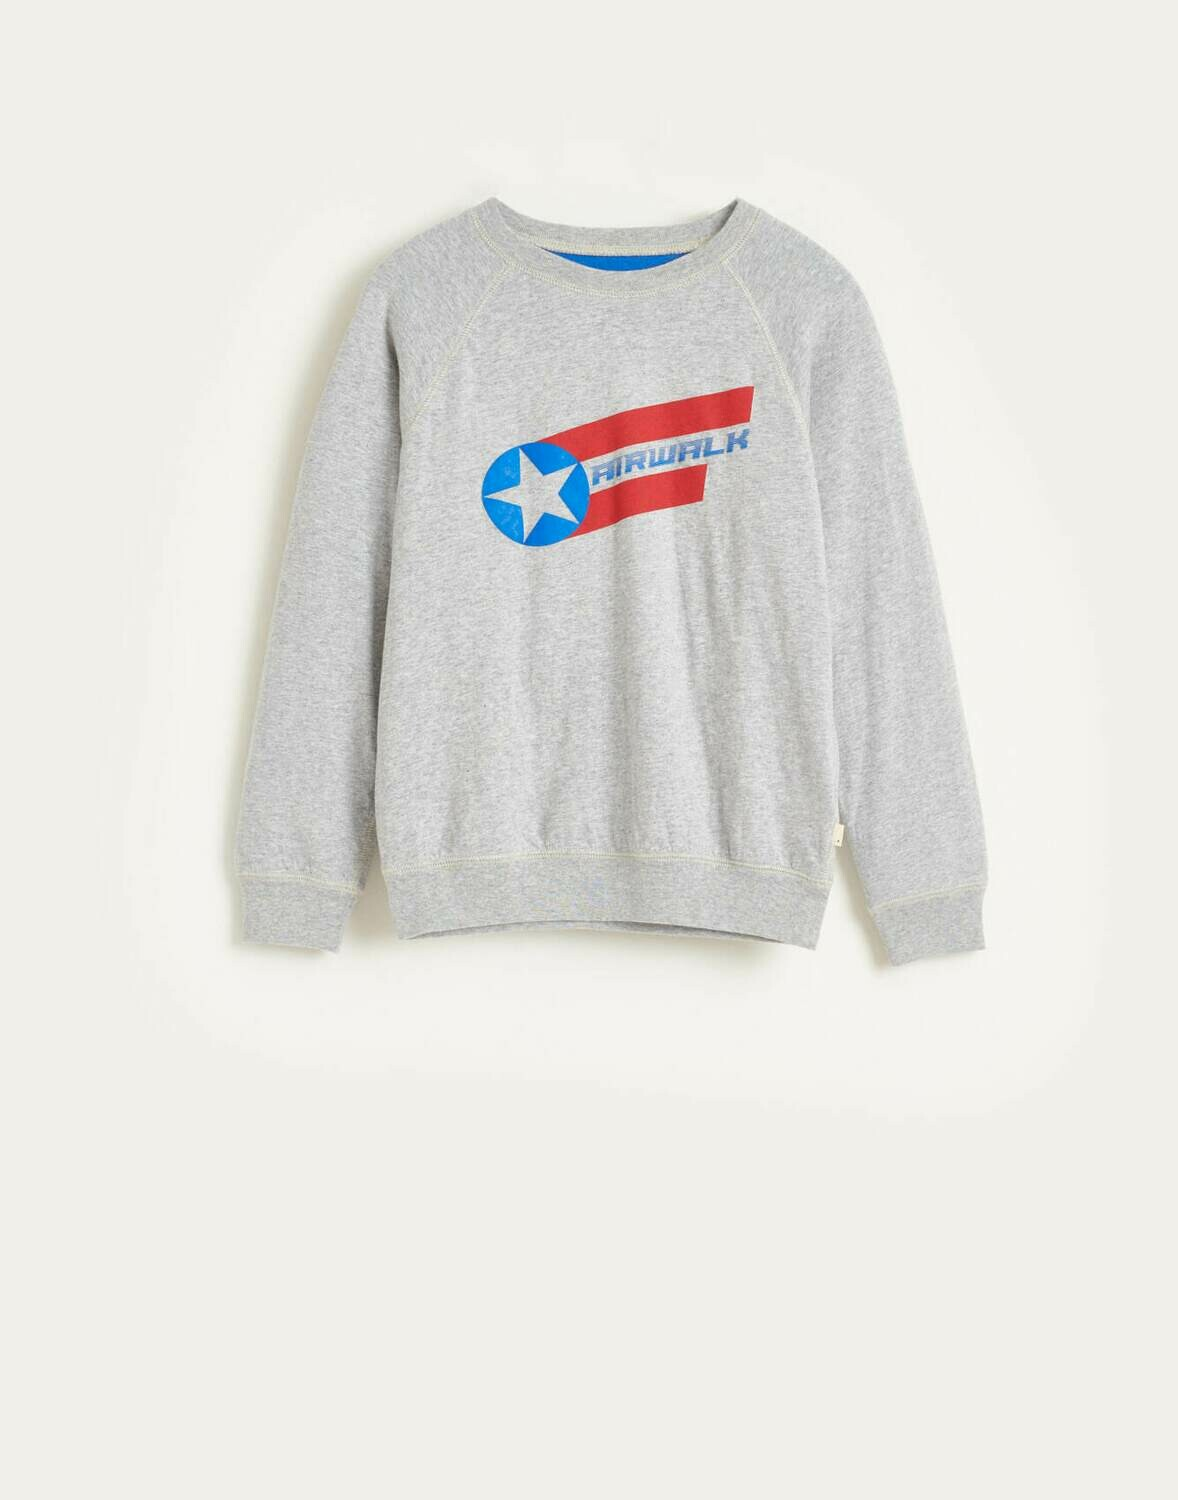 MALY11 SWEATER